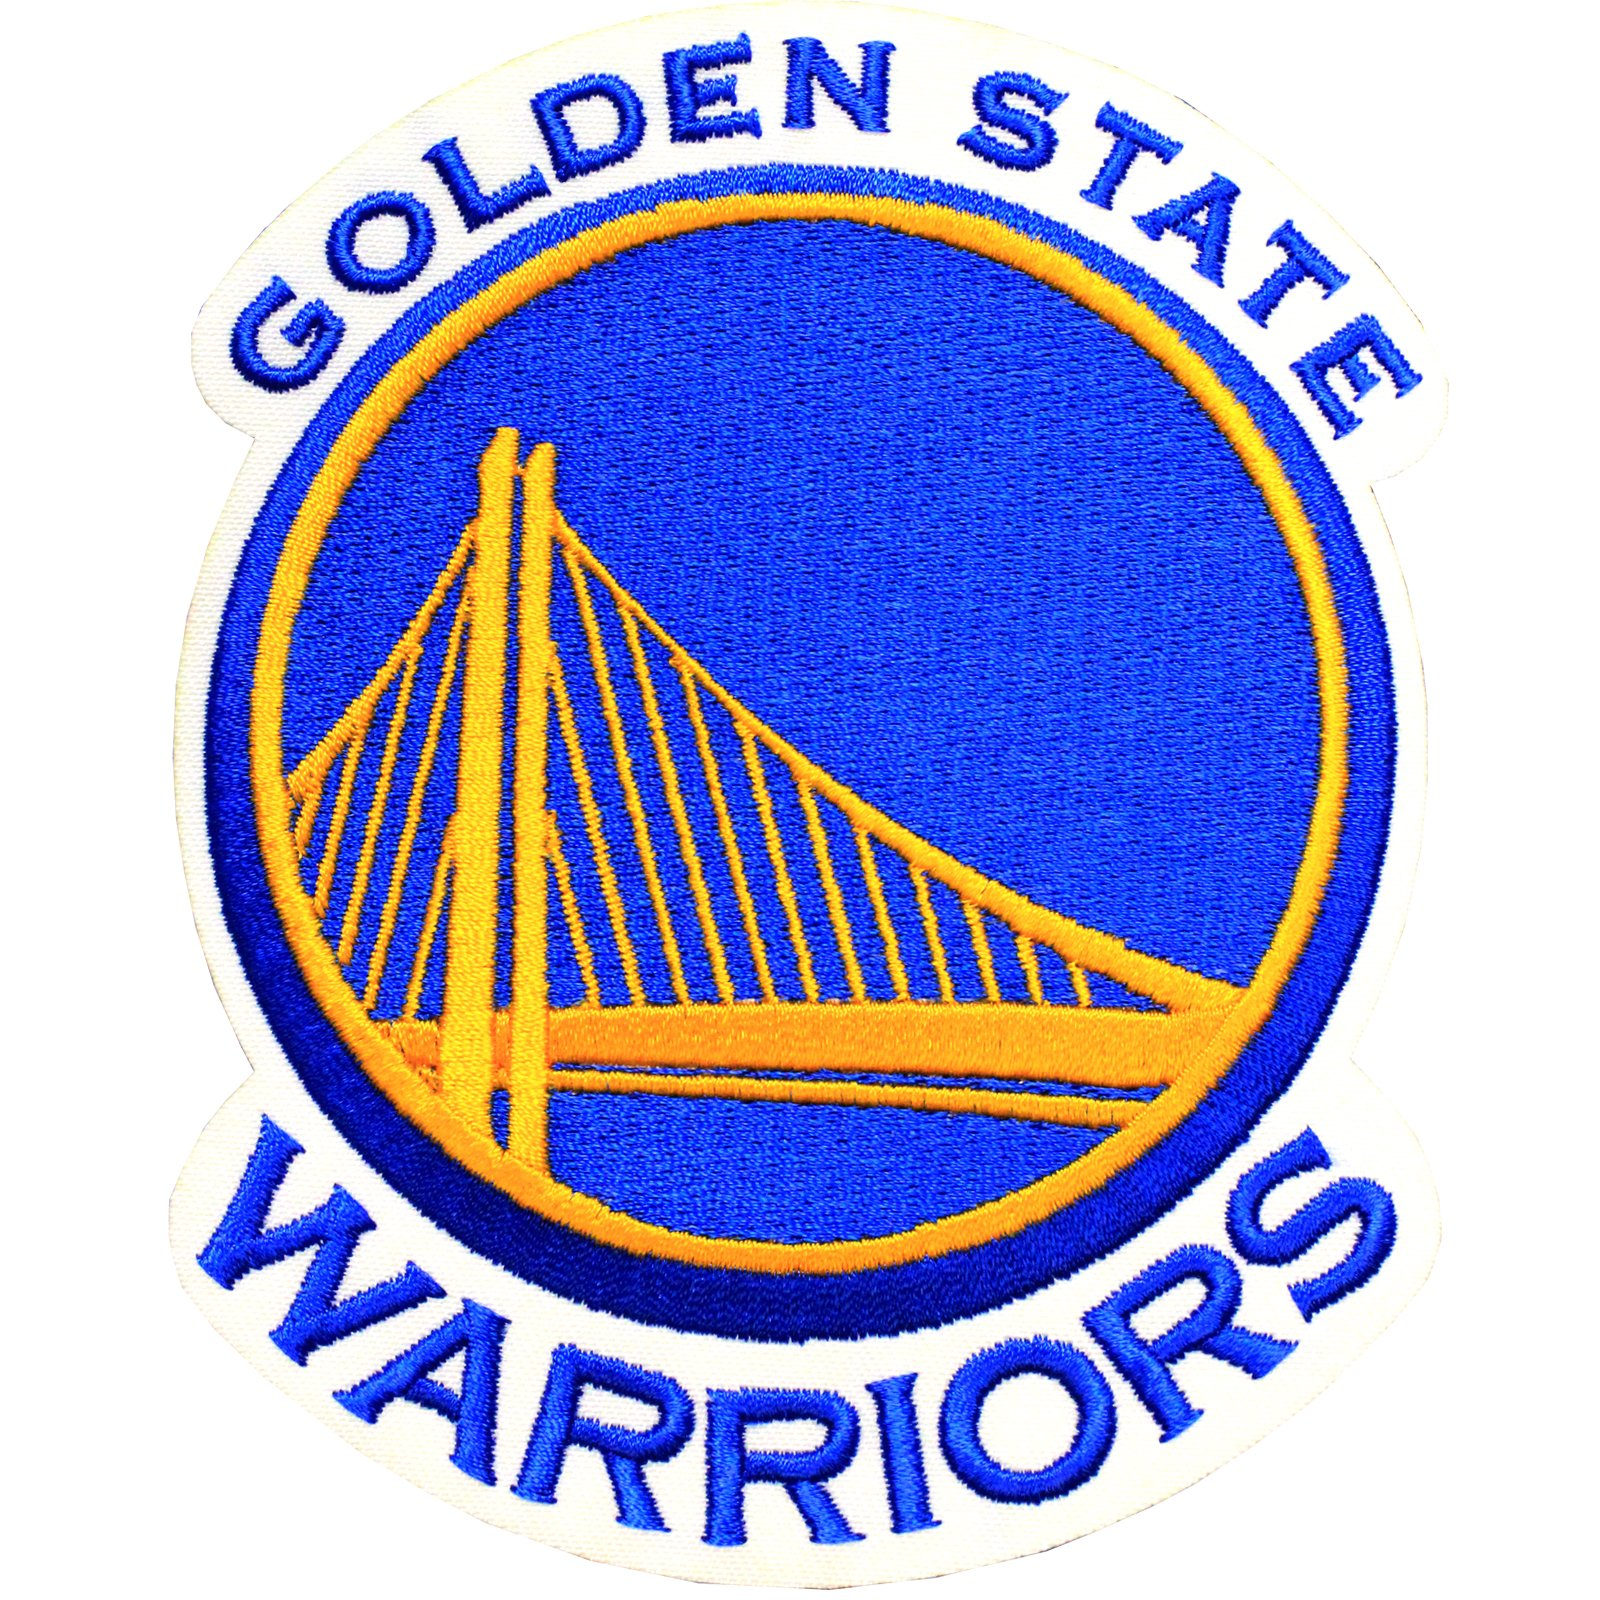 Official Golden State Warriors Logo Large NBA Basketball Patch Emblem by Patch Collection